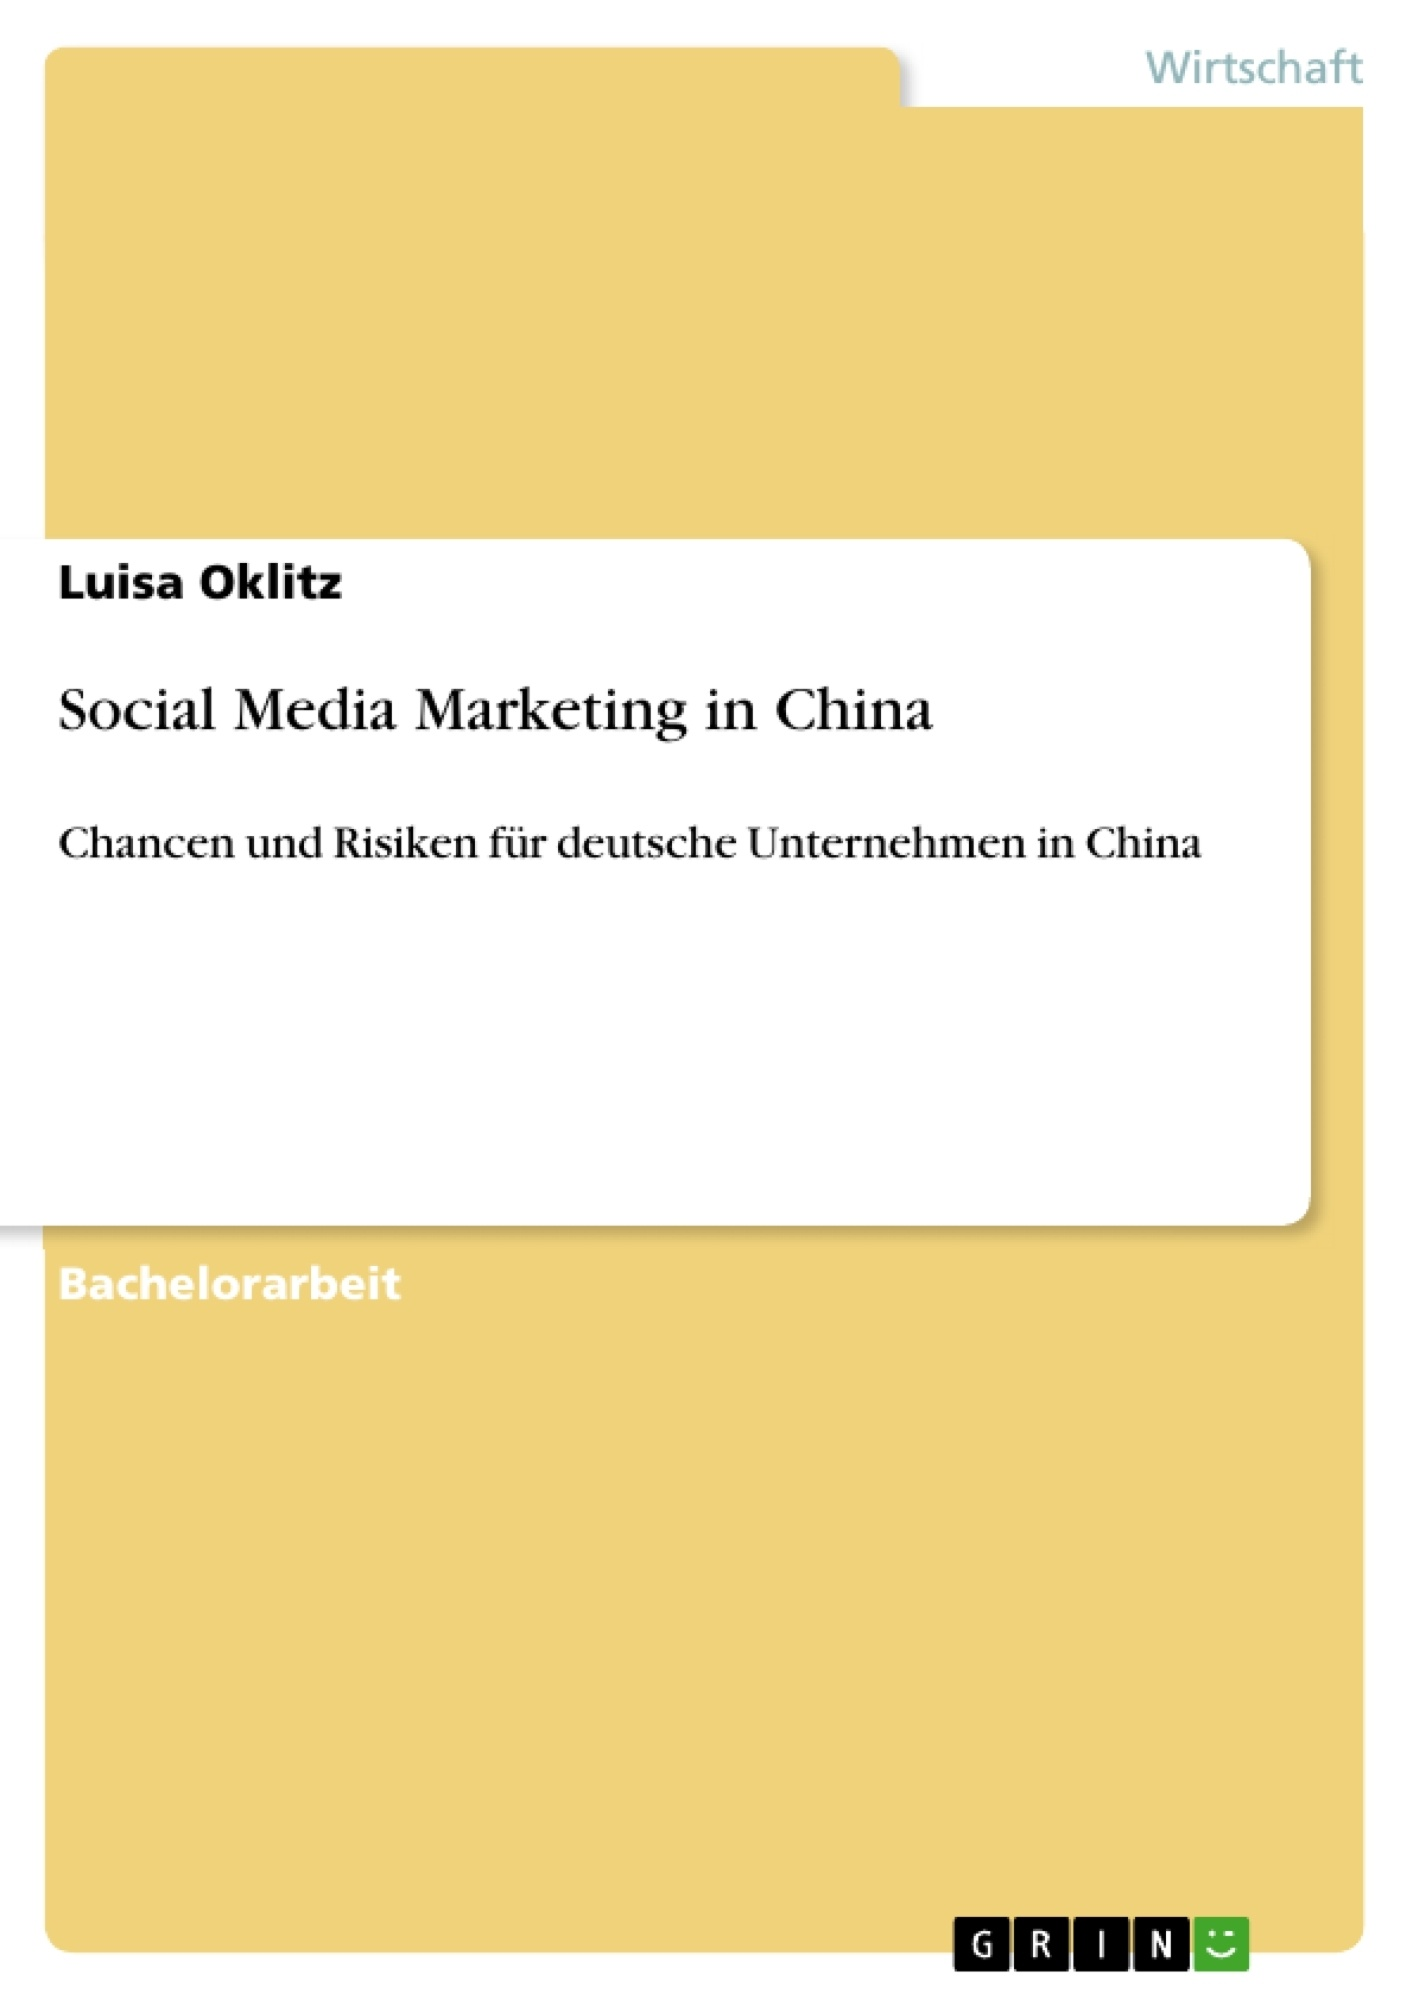 Titel: Social Media Marketing in China